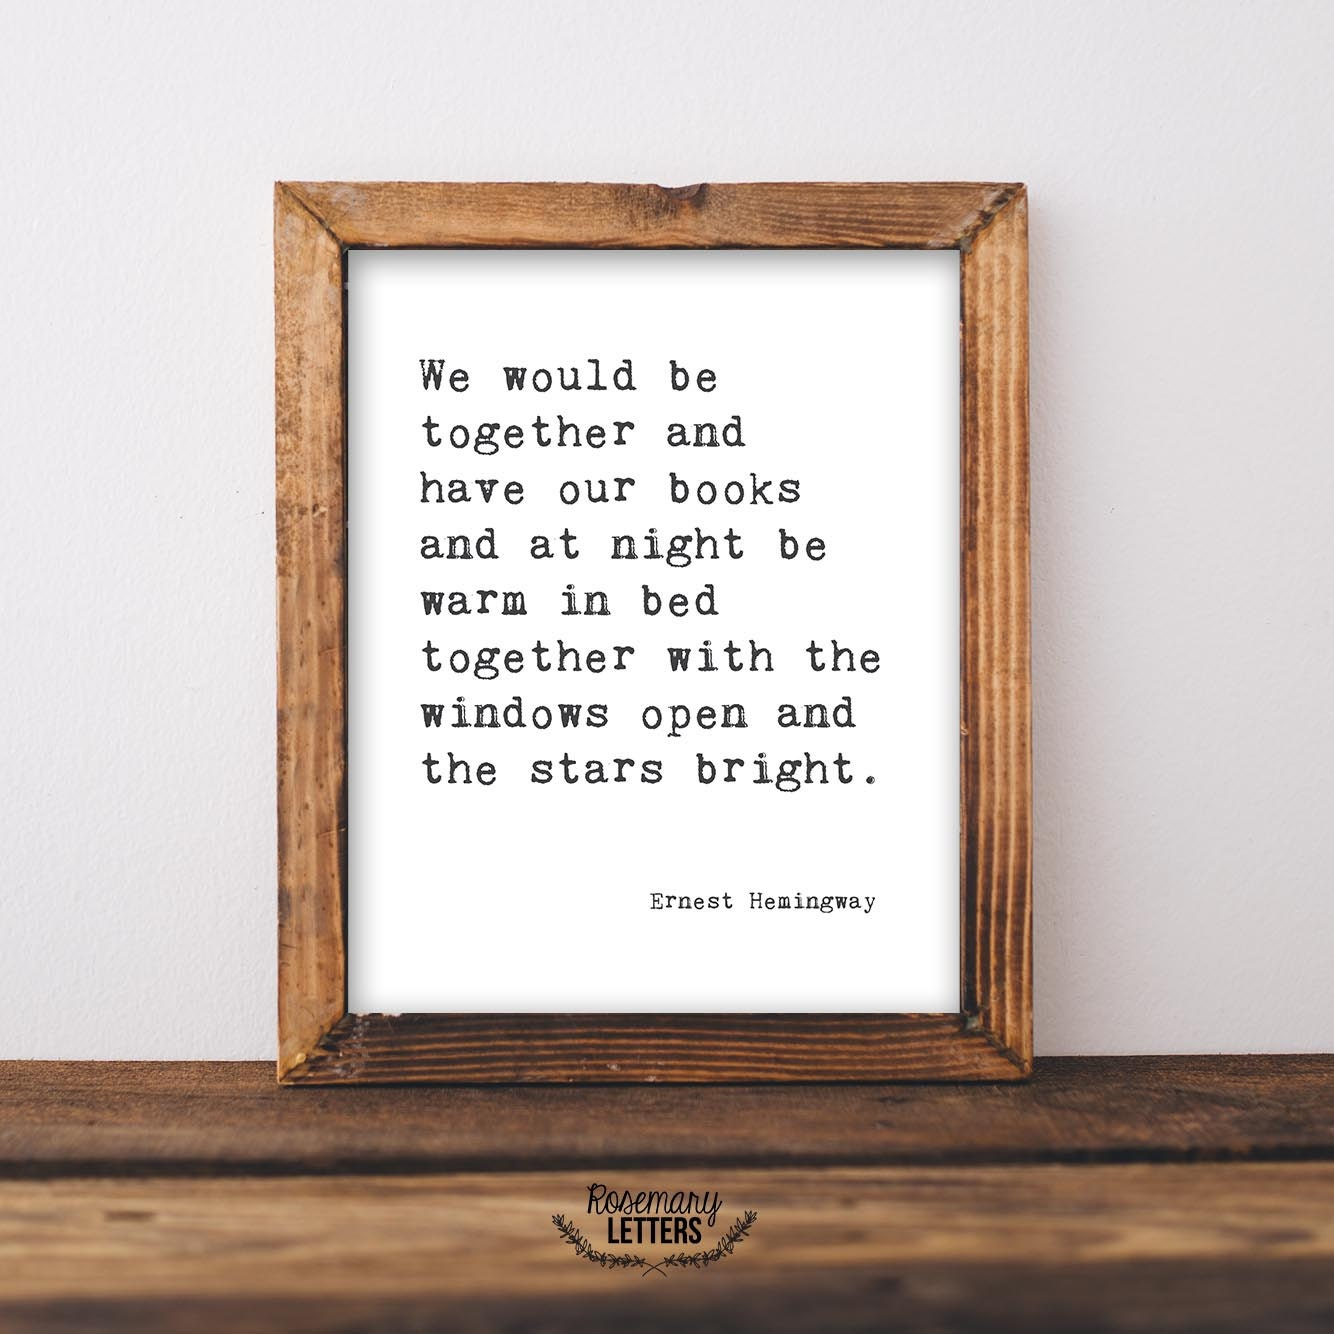 Hemingway Quotes On Love We Would Be Together Printable Ernest Hemingway Quote Ernest